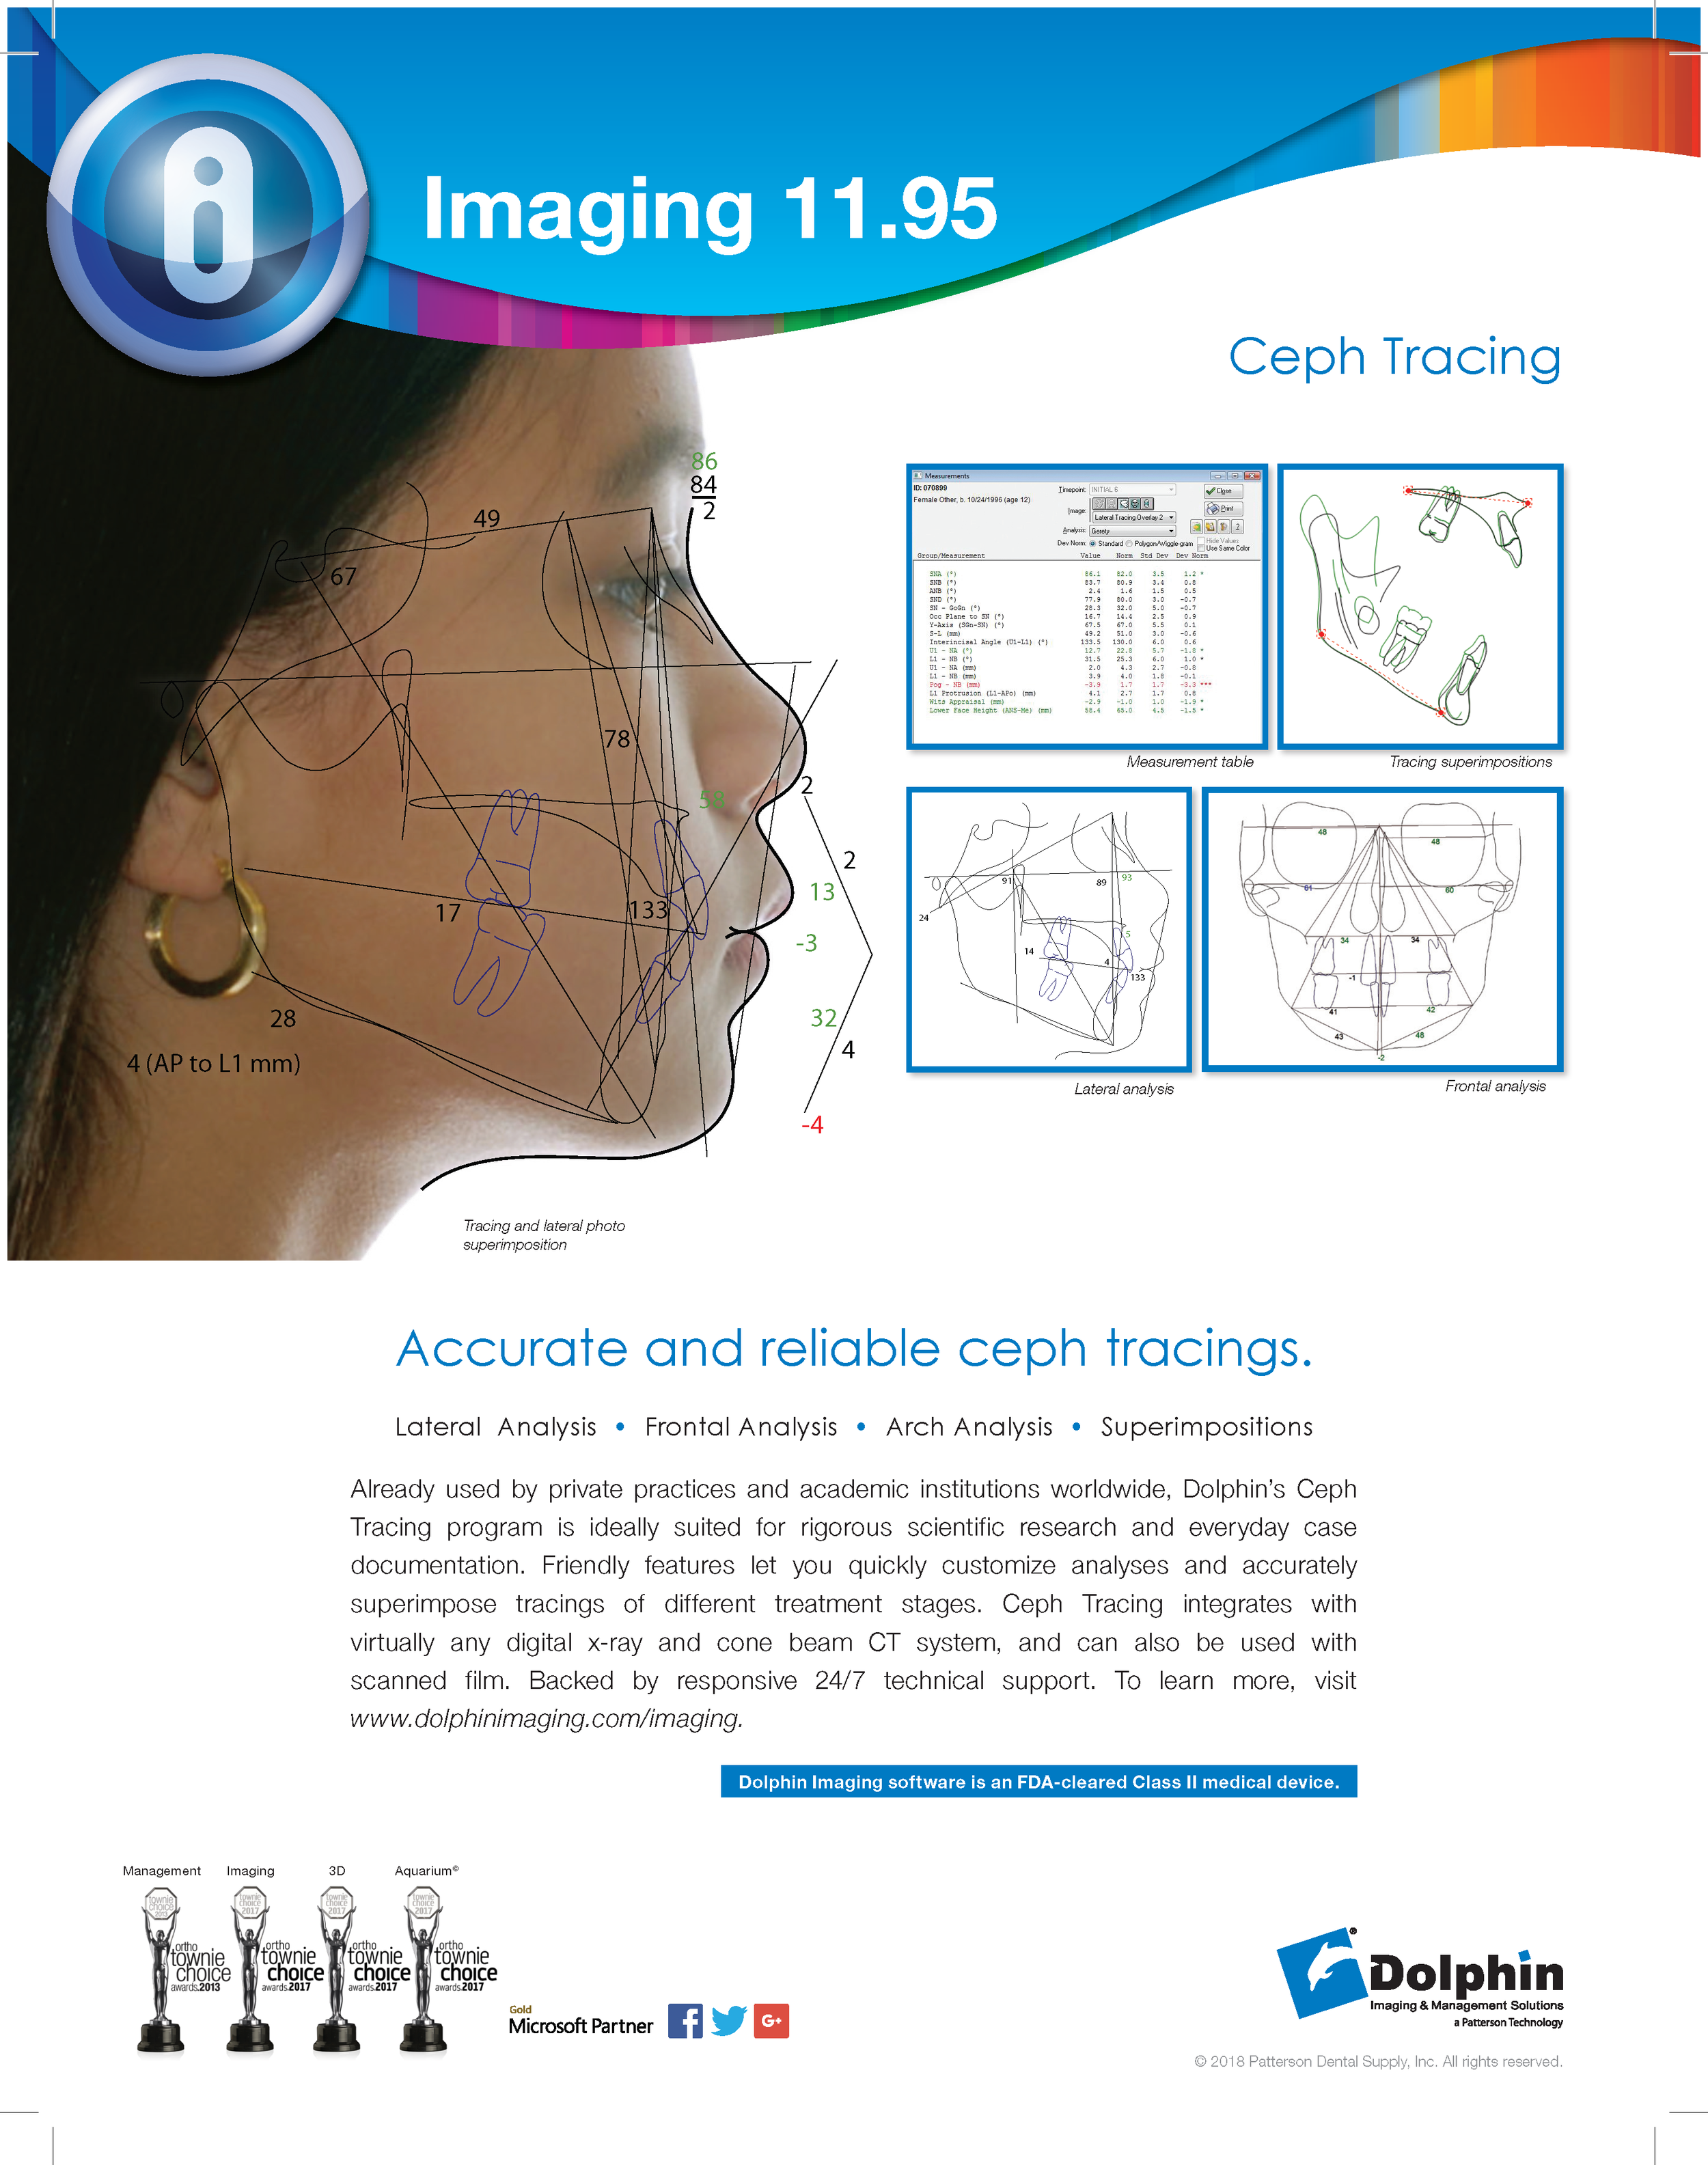 Ceph Tracing - Accurate and reliable ceph tracings.Lateral Analysis • Frontal Analysis • Arch Analysis • SuperimpositionsAlready used by private practices and academic institutions worldwide, Dolphin's Ceph Tracing program is ideally suited for rigorous scientific research and everyday case documentation. Friendly features let you quickly customize analyses and accurately superimpose tracings of different treatment stages. Ceph Tracing integrates with virtually any digital x-ray and cone beam CT system, and can also be used with scanned film. Backed by responsive 24/7 technical support. To learn more, visit www.dolphinimaging.com/imaging.